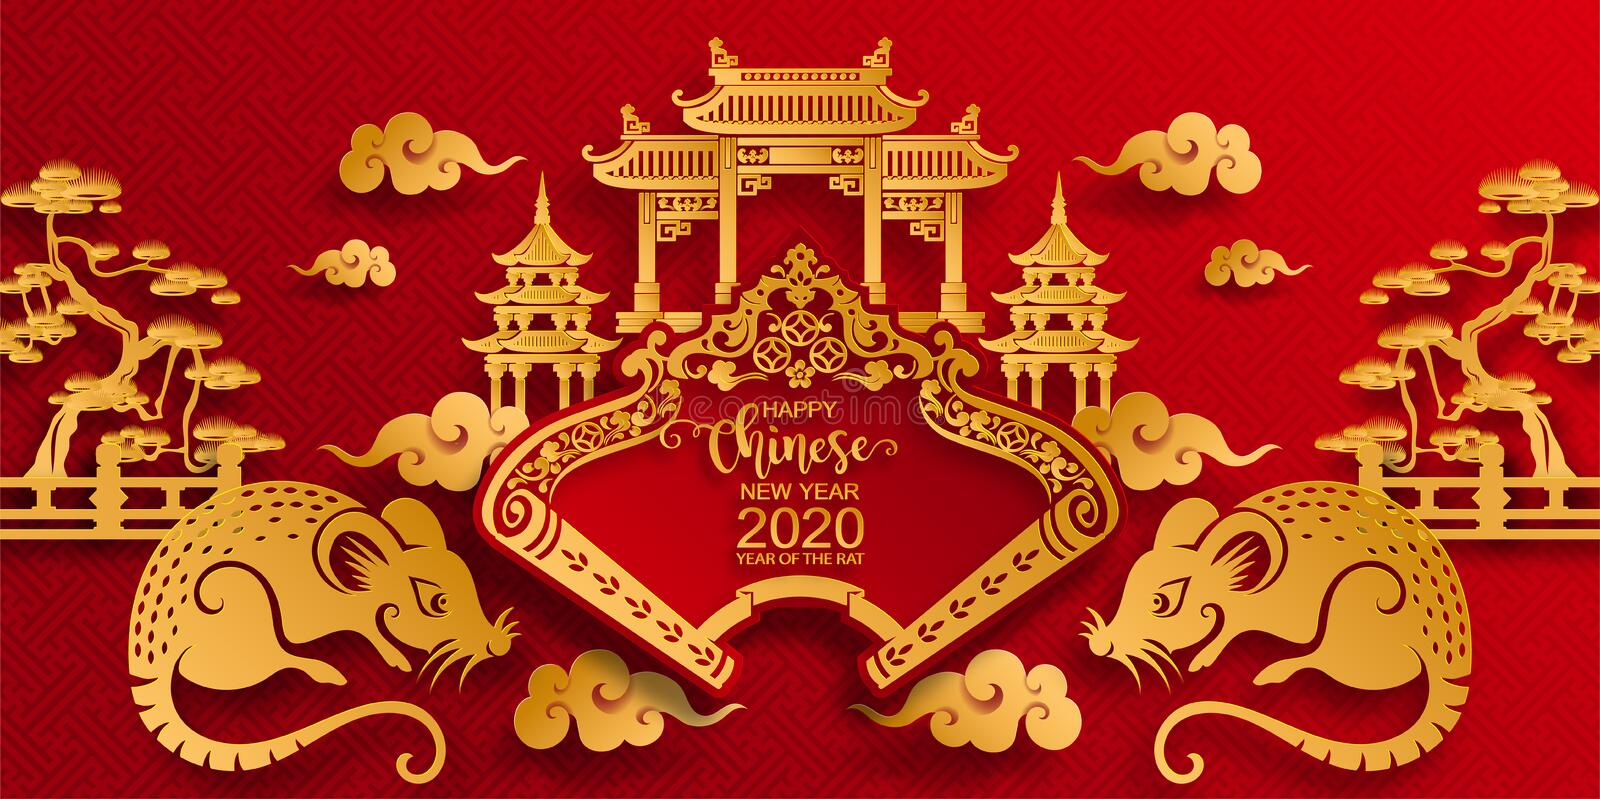 Nouvelle année chinoise heureuse 2020 illustration stock